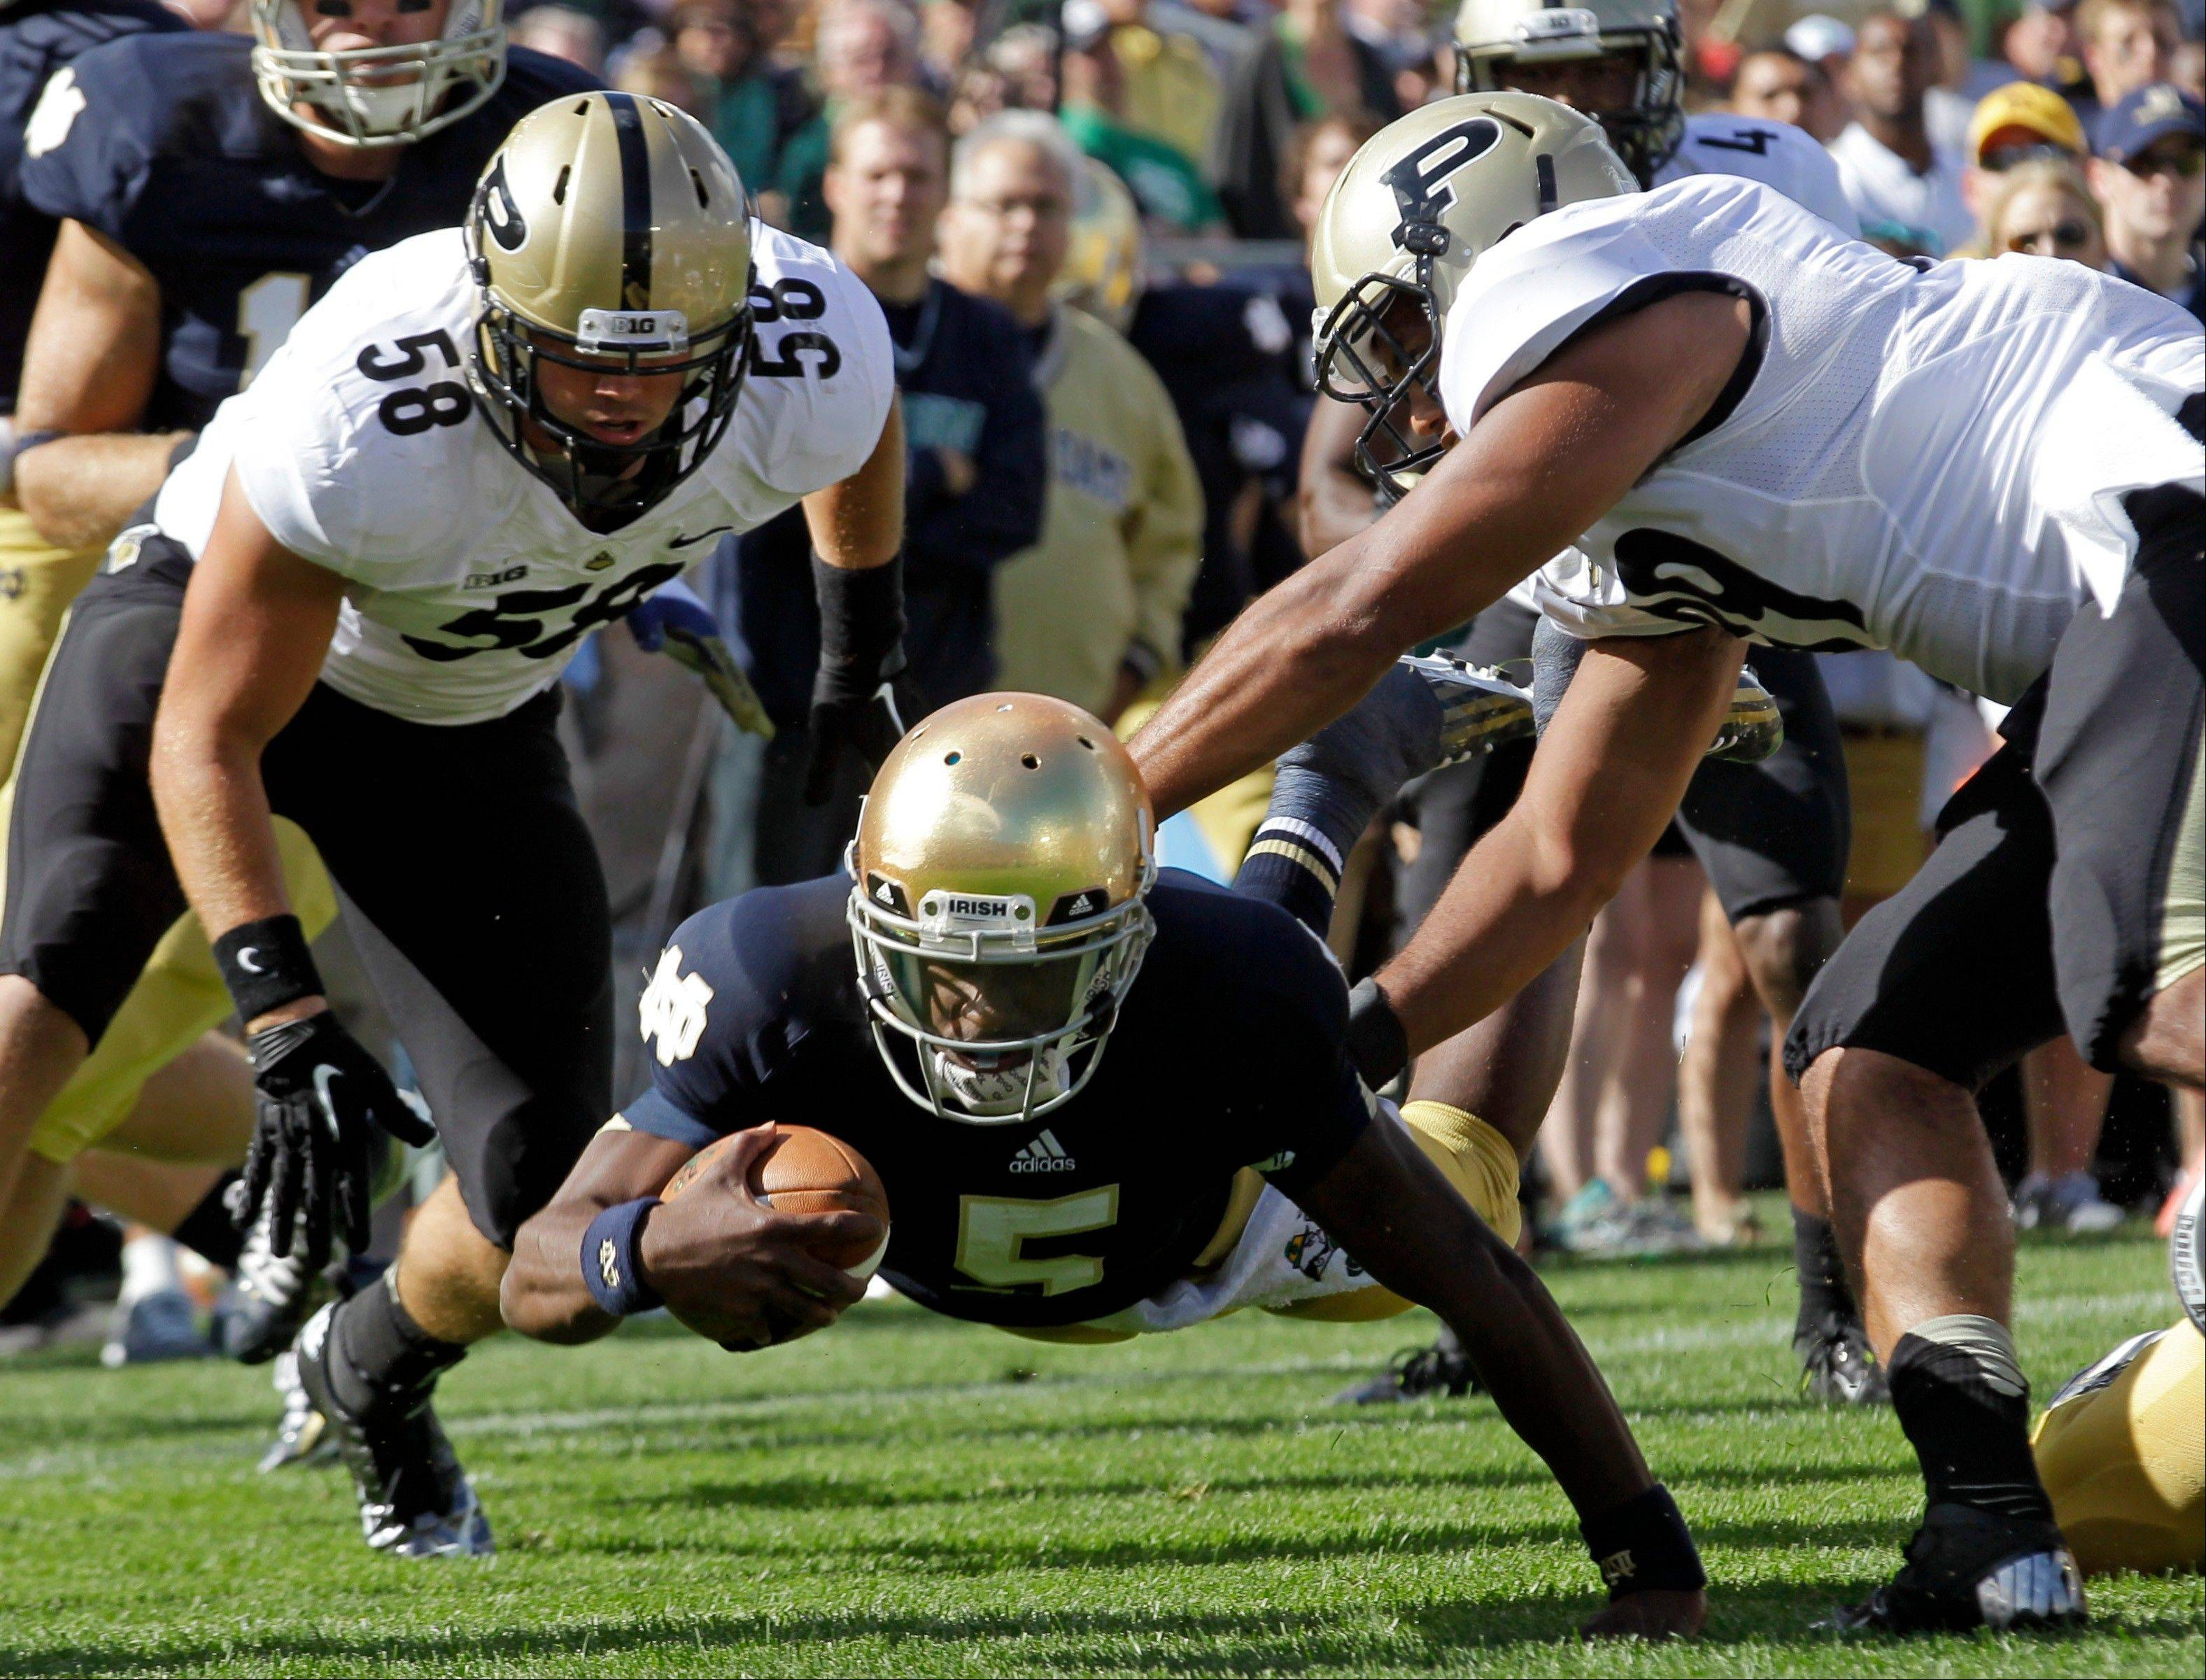 Notre Dame quarterback Everett Golson, center, attempts to dive into the end zone between Purdue defensive end Robert Maci (58) and linebacker Joe Gilliam during the first half of an NCAA college football game in South Bend, Ind., Saturday.